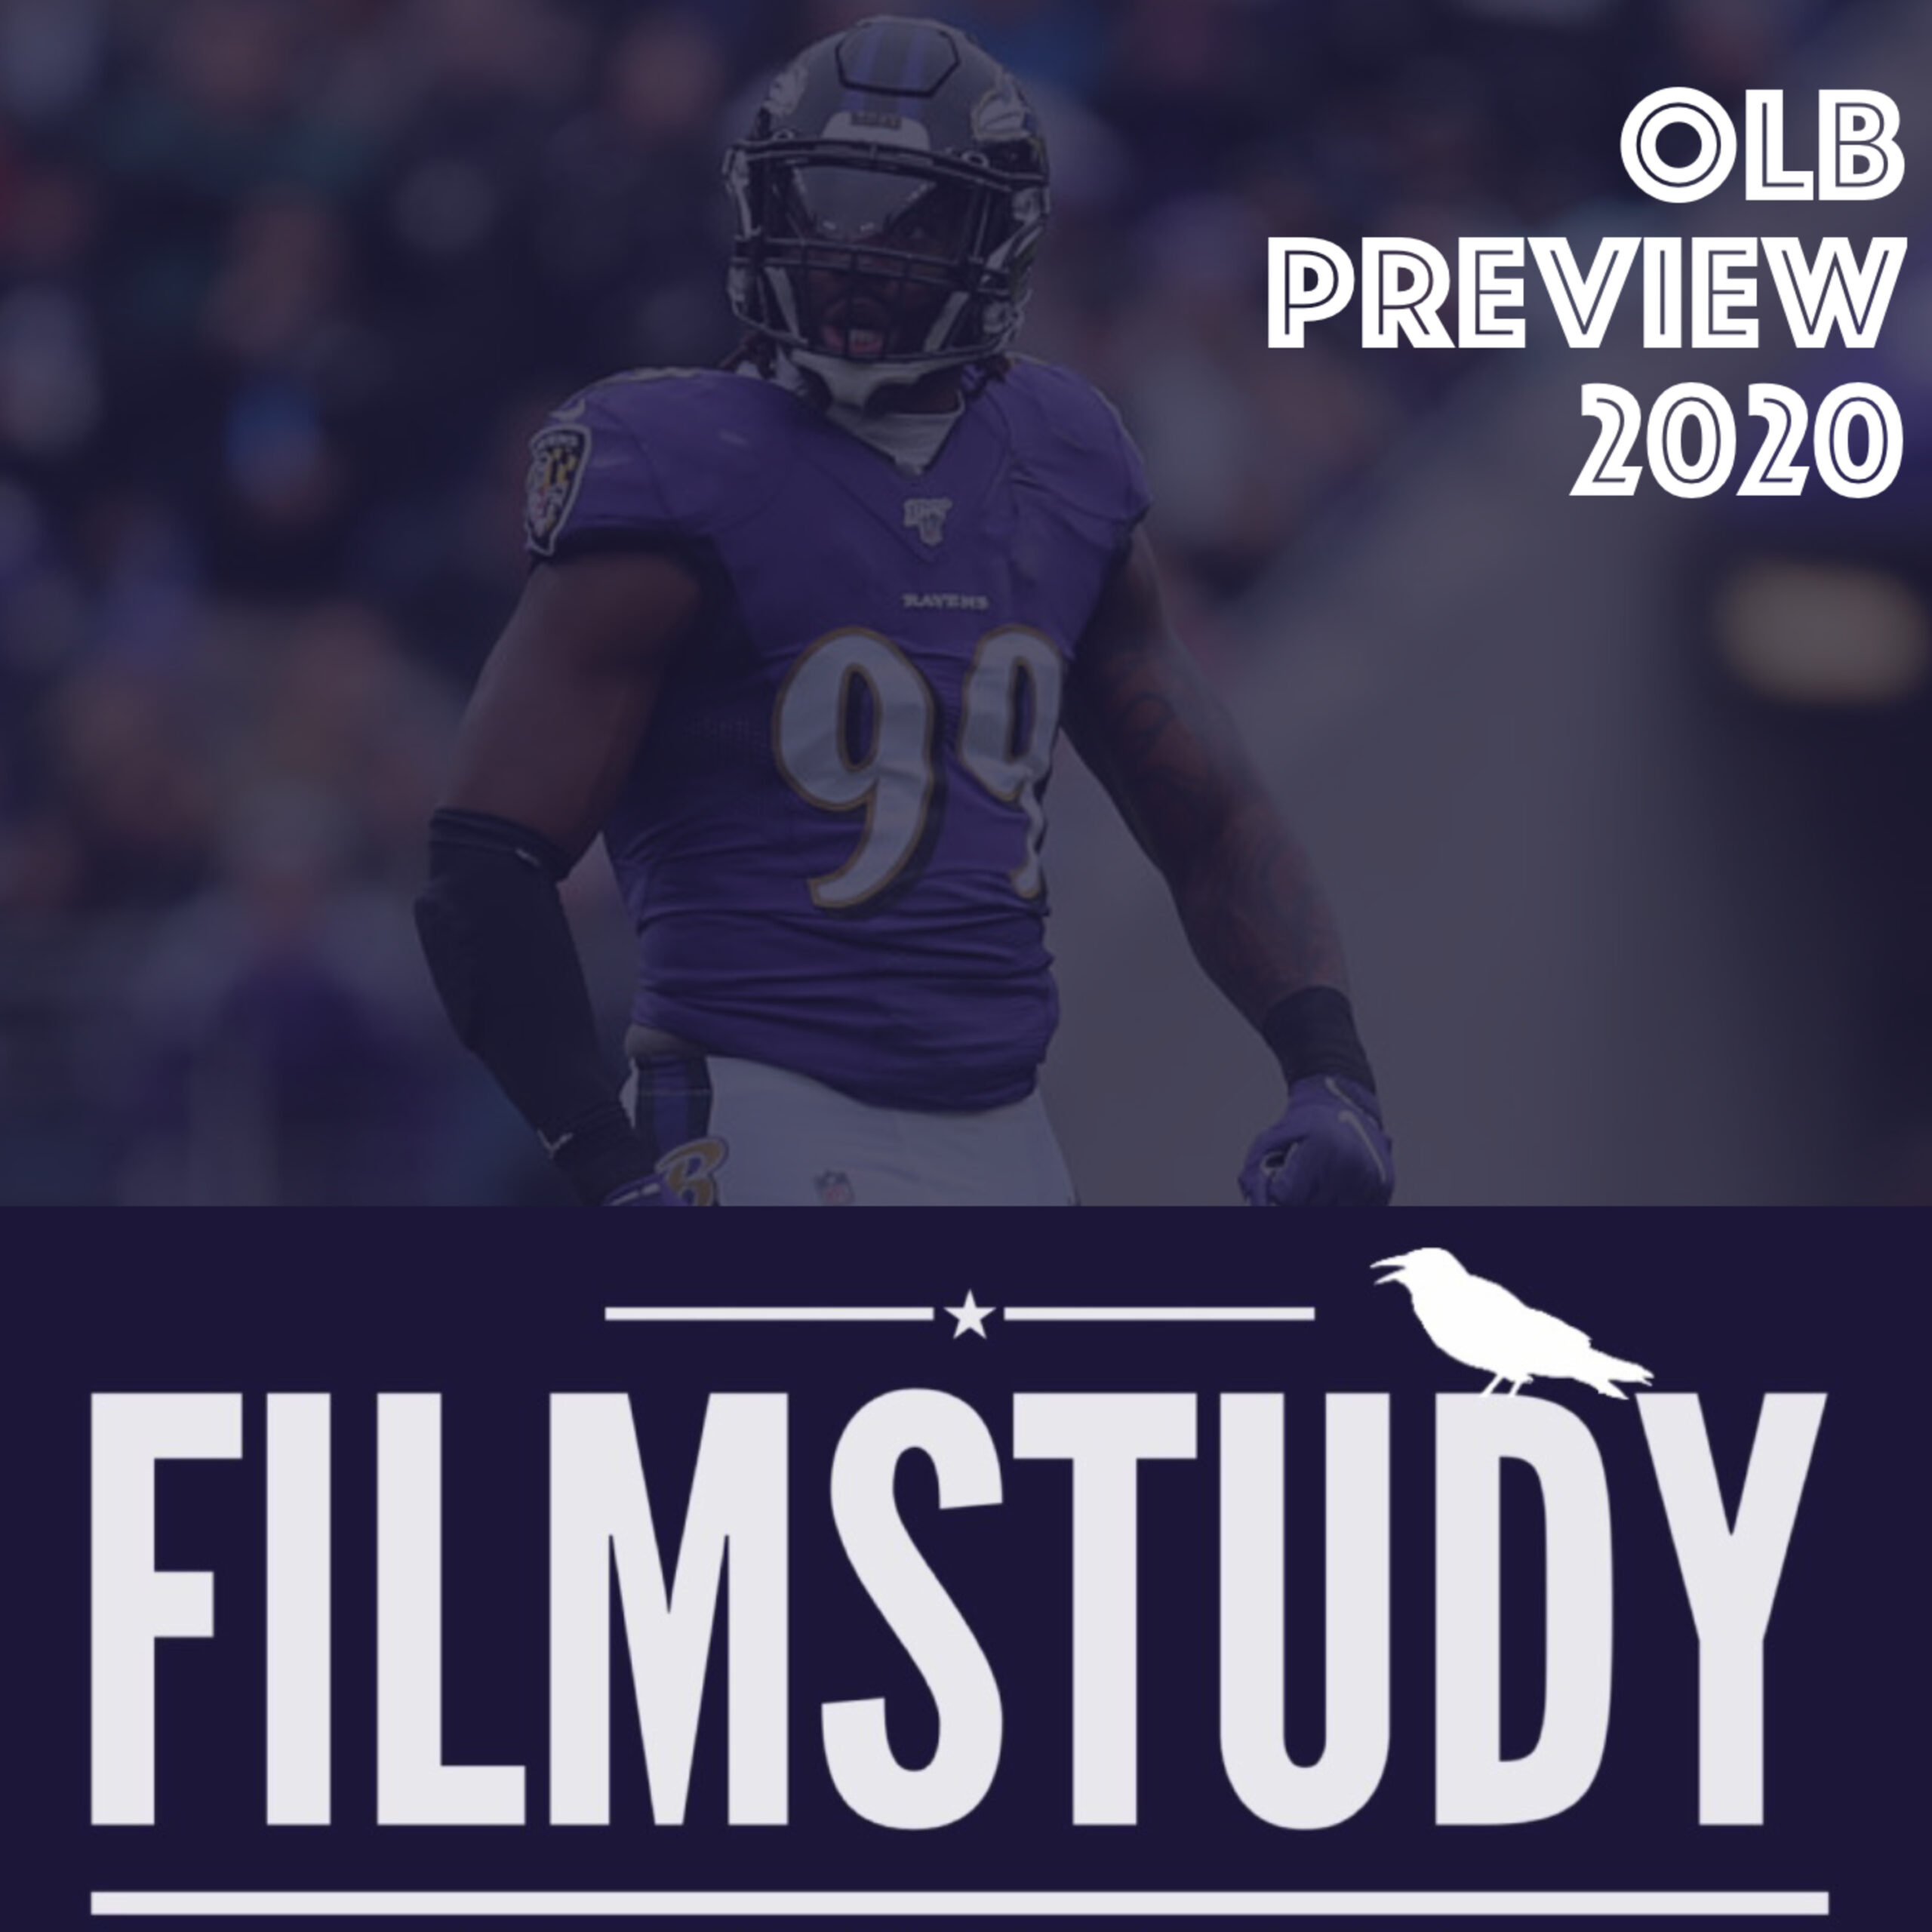 OLB Preview